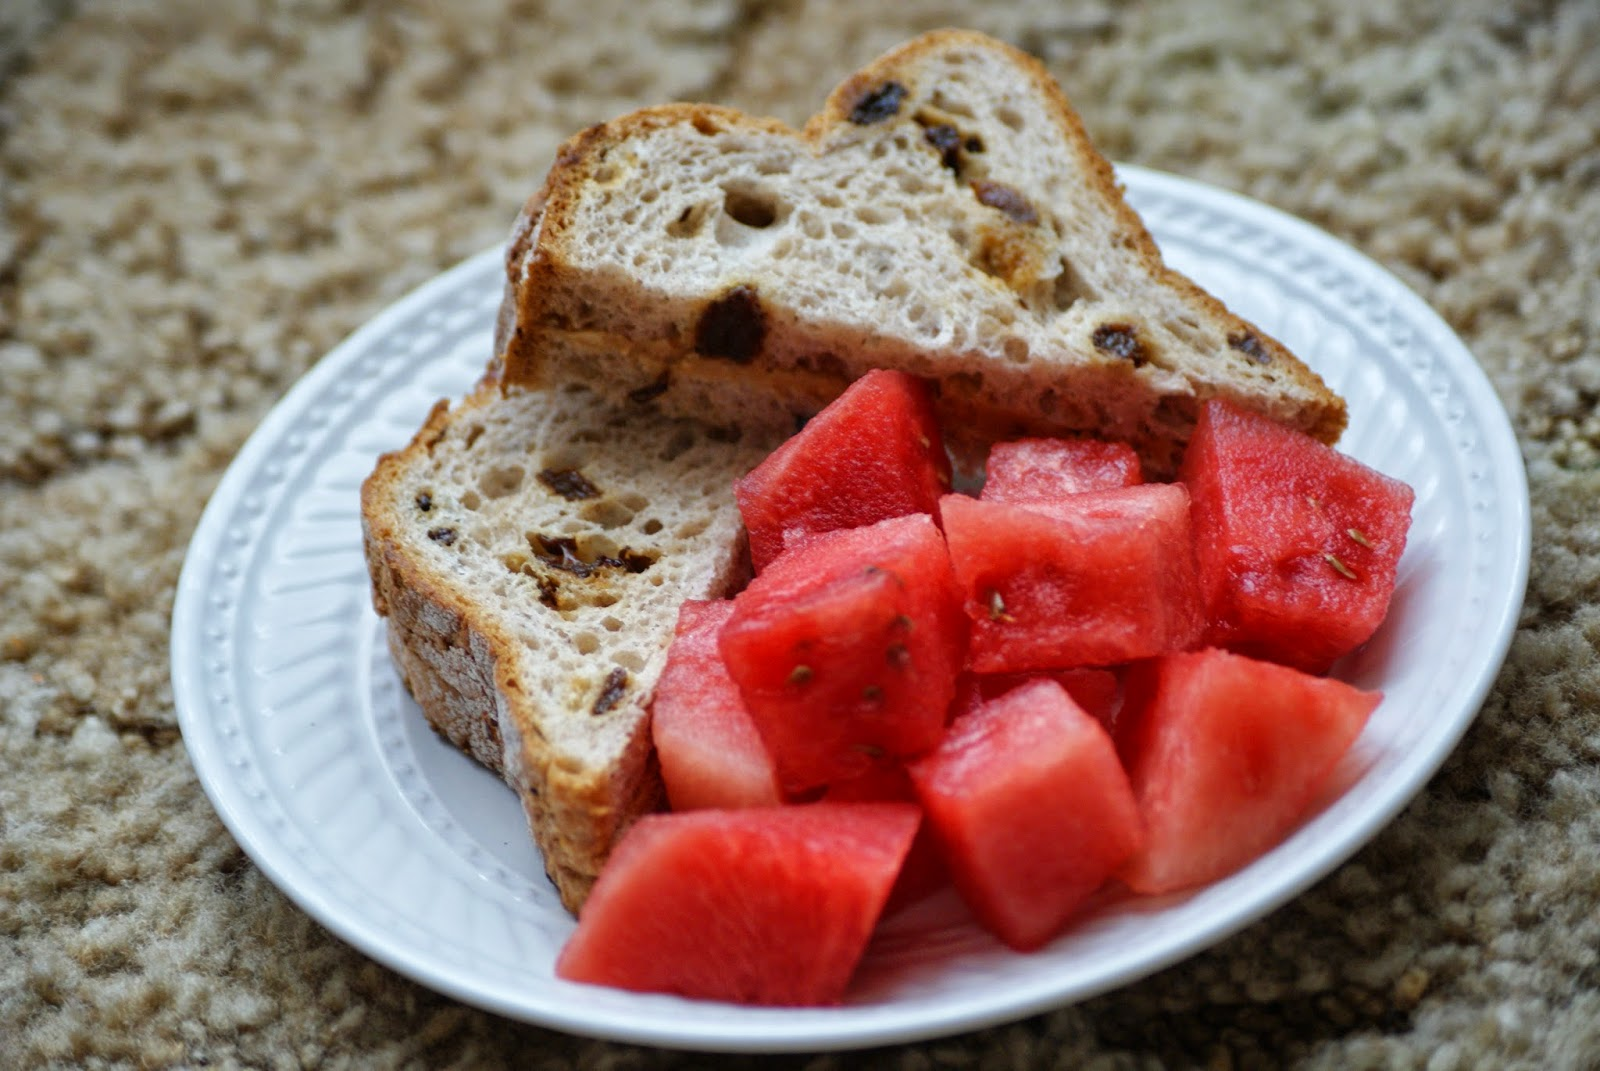 Gluten Free Cinnamon Raisin Peanut Butter Sandwich with Watermelon